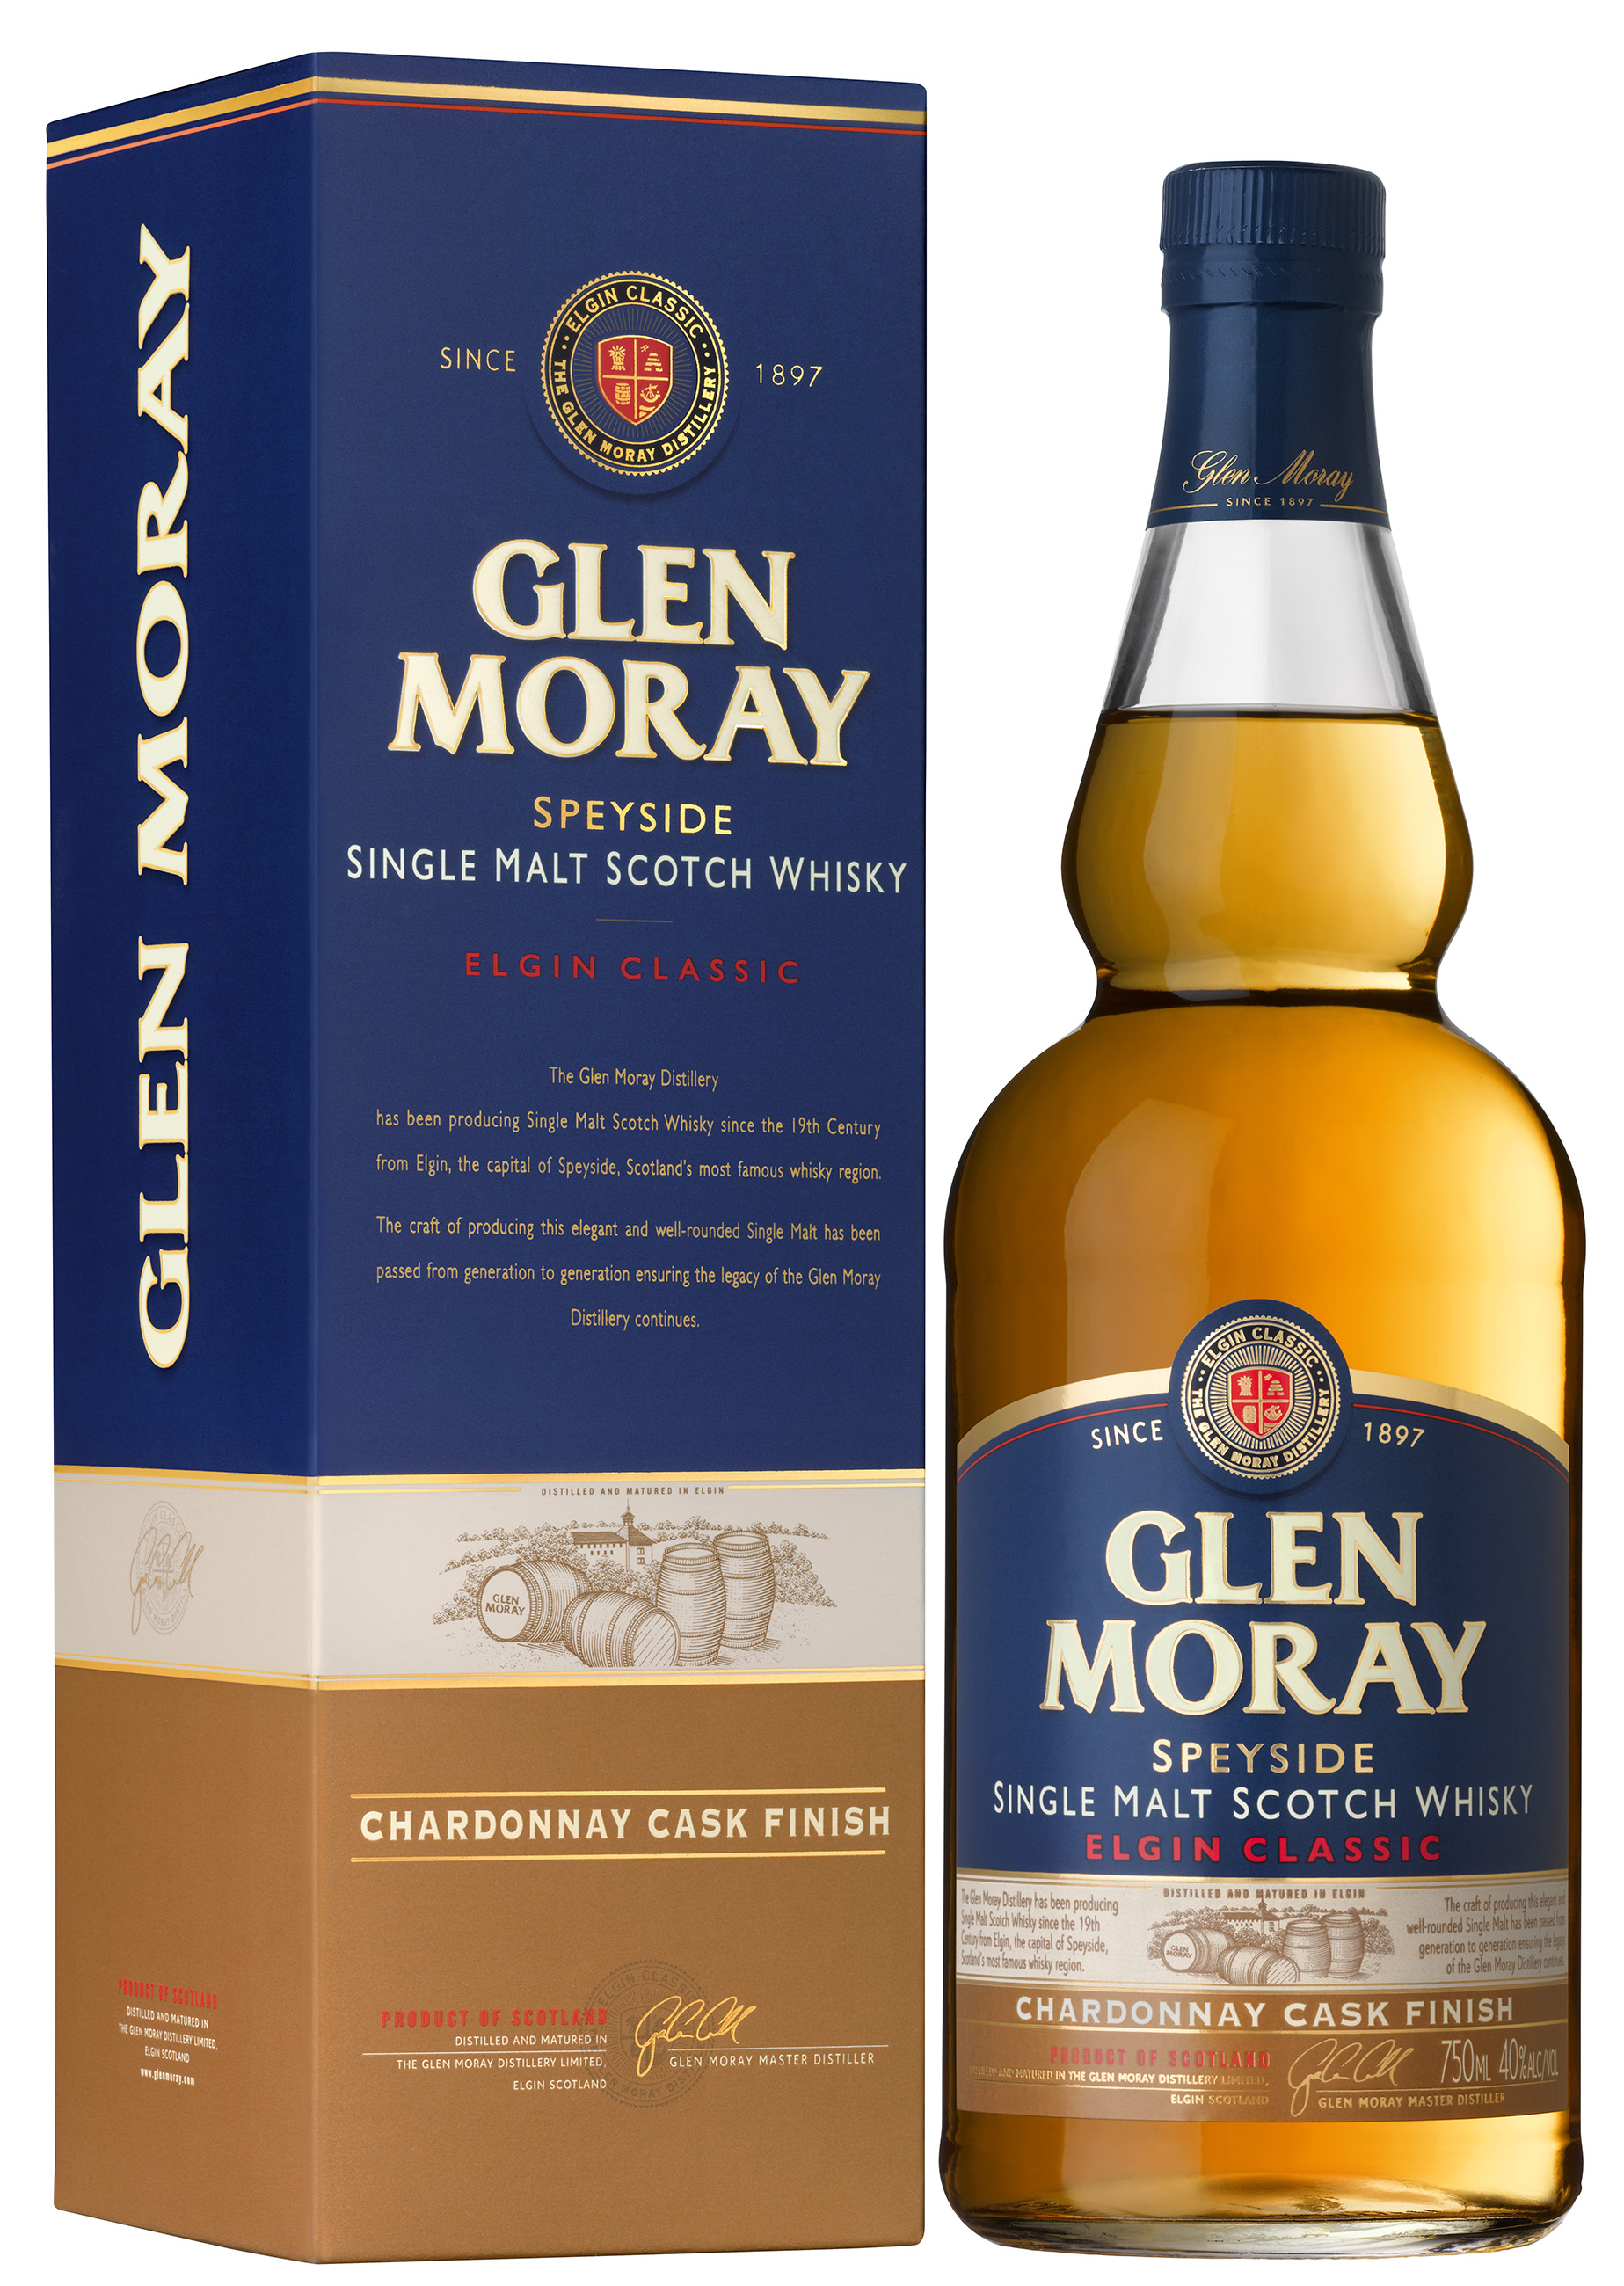 The Glen Moray Chardonnay Cask Finish